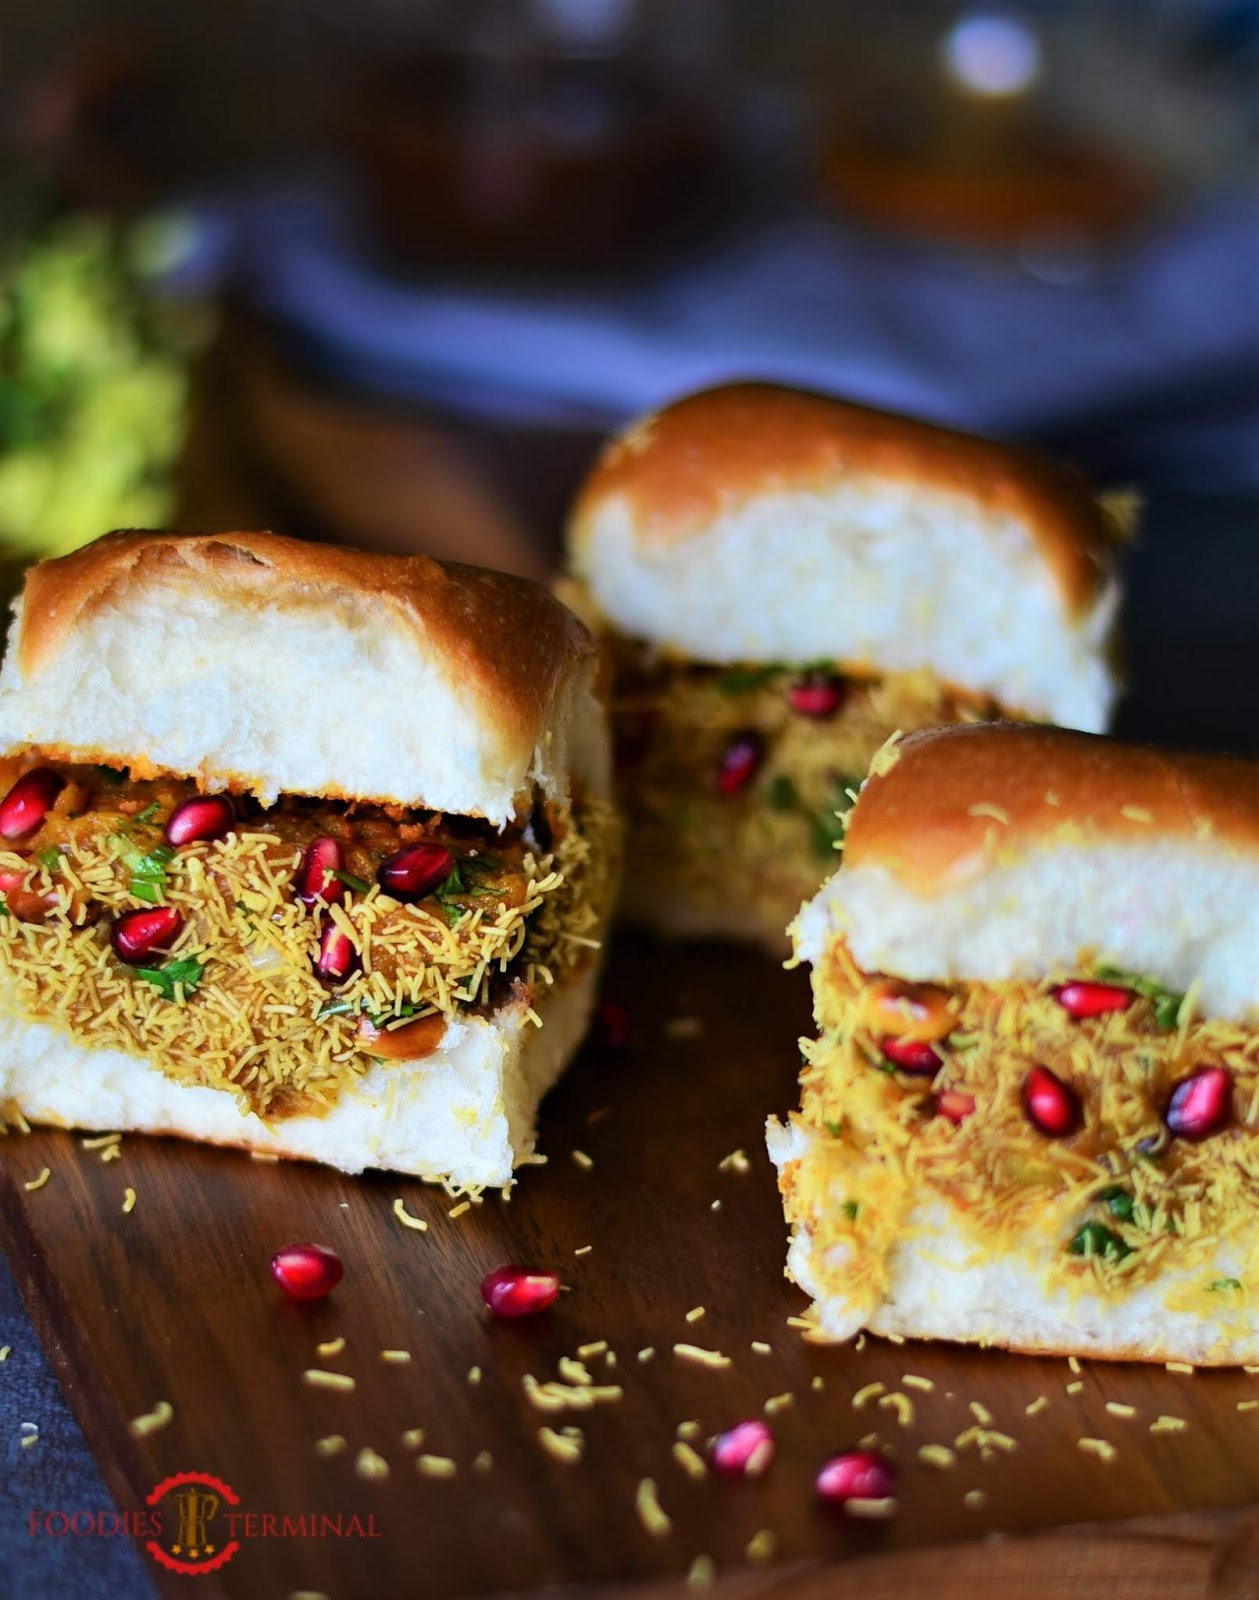 Kutchi Dabeli recipe, garnished with sev and stuffed with the potato filling.